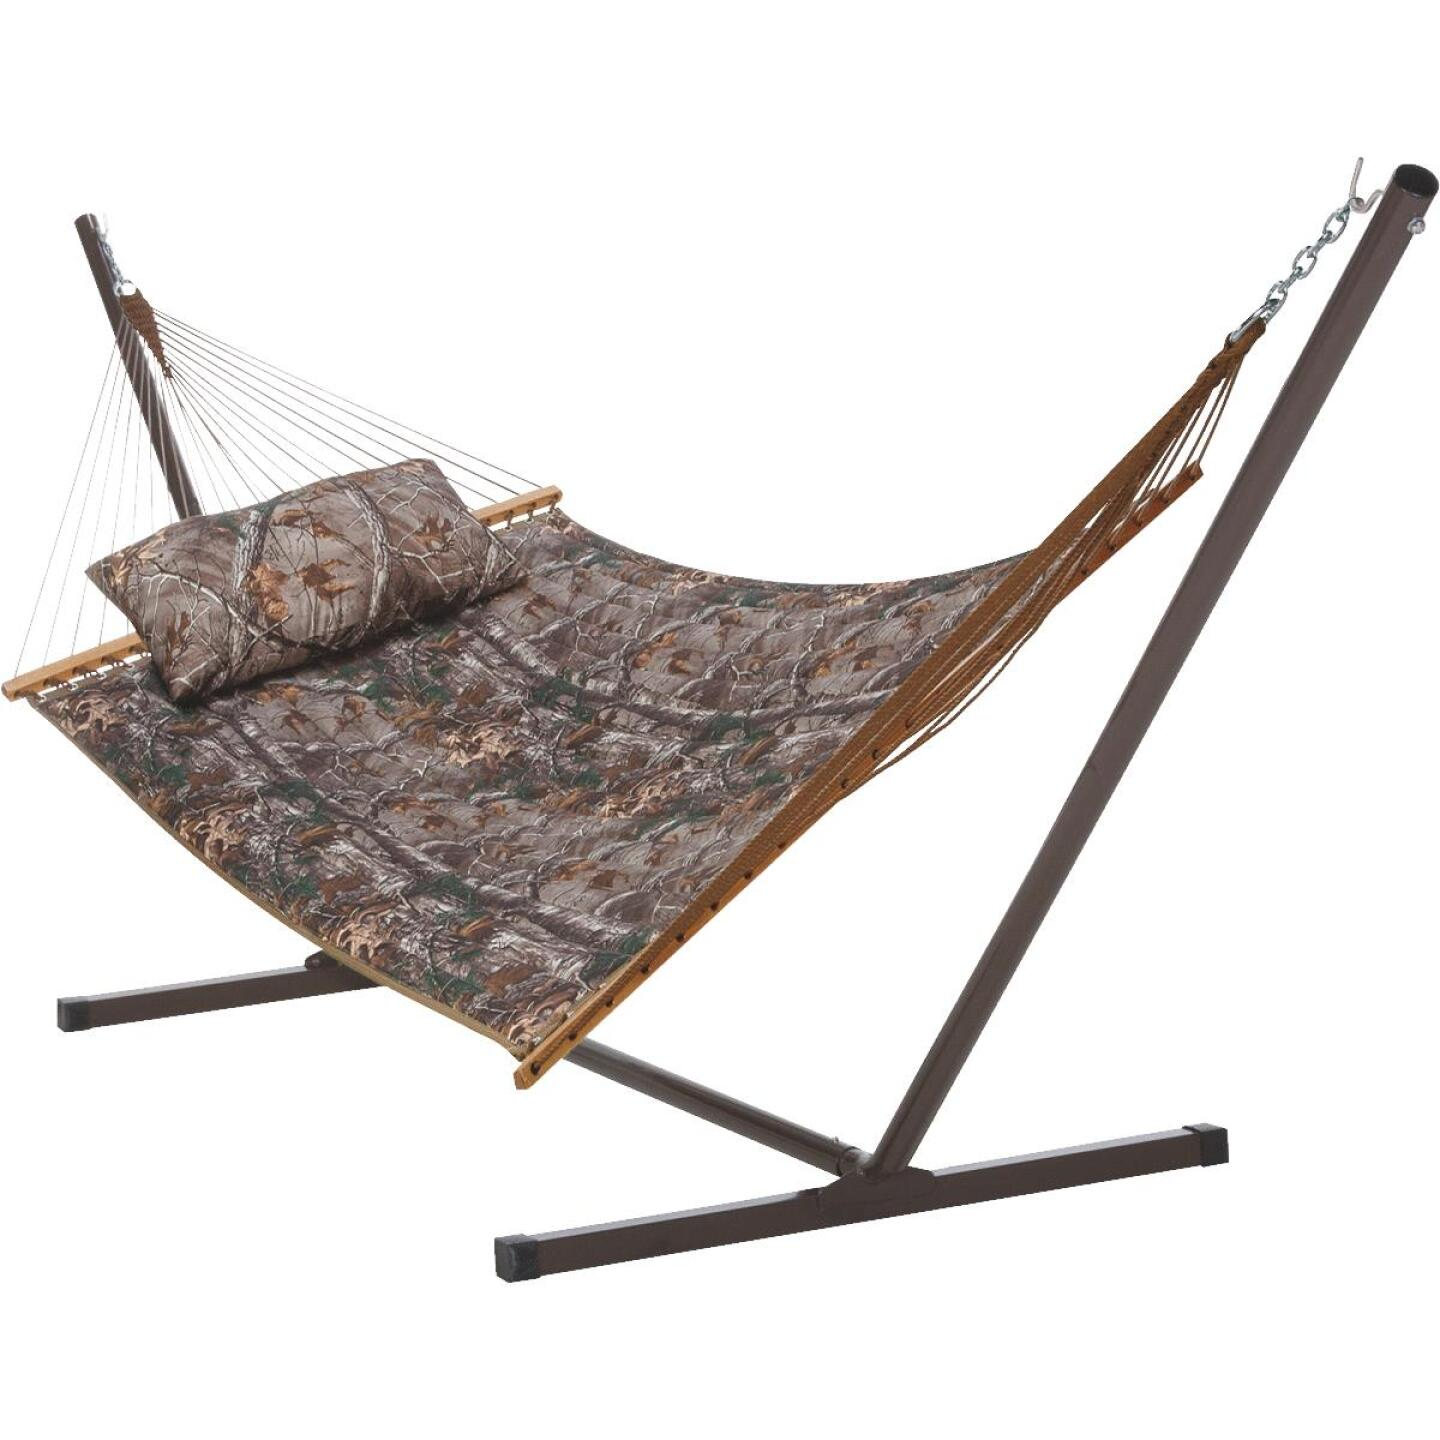 Castaway RealTree Quilted Hammock with Pillow & Stand Image 1